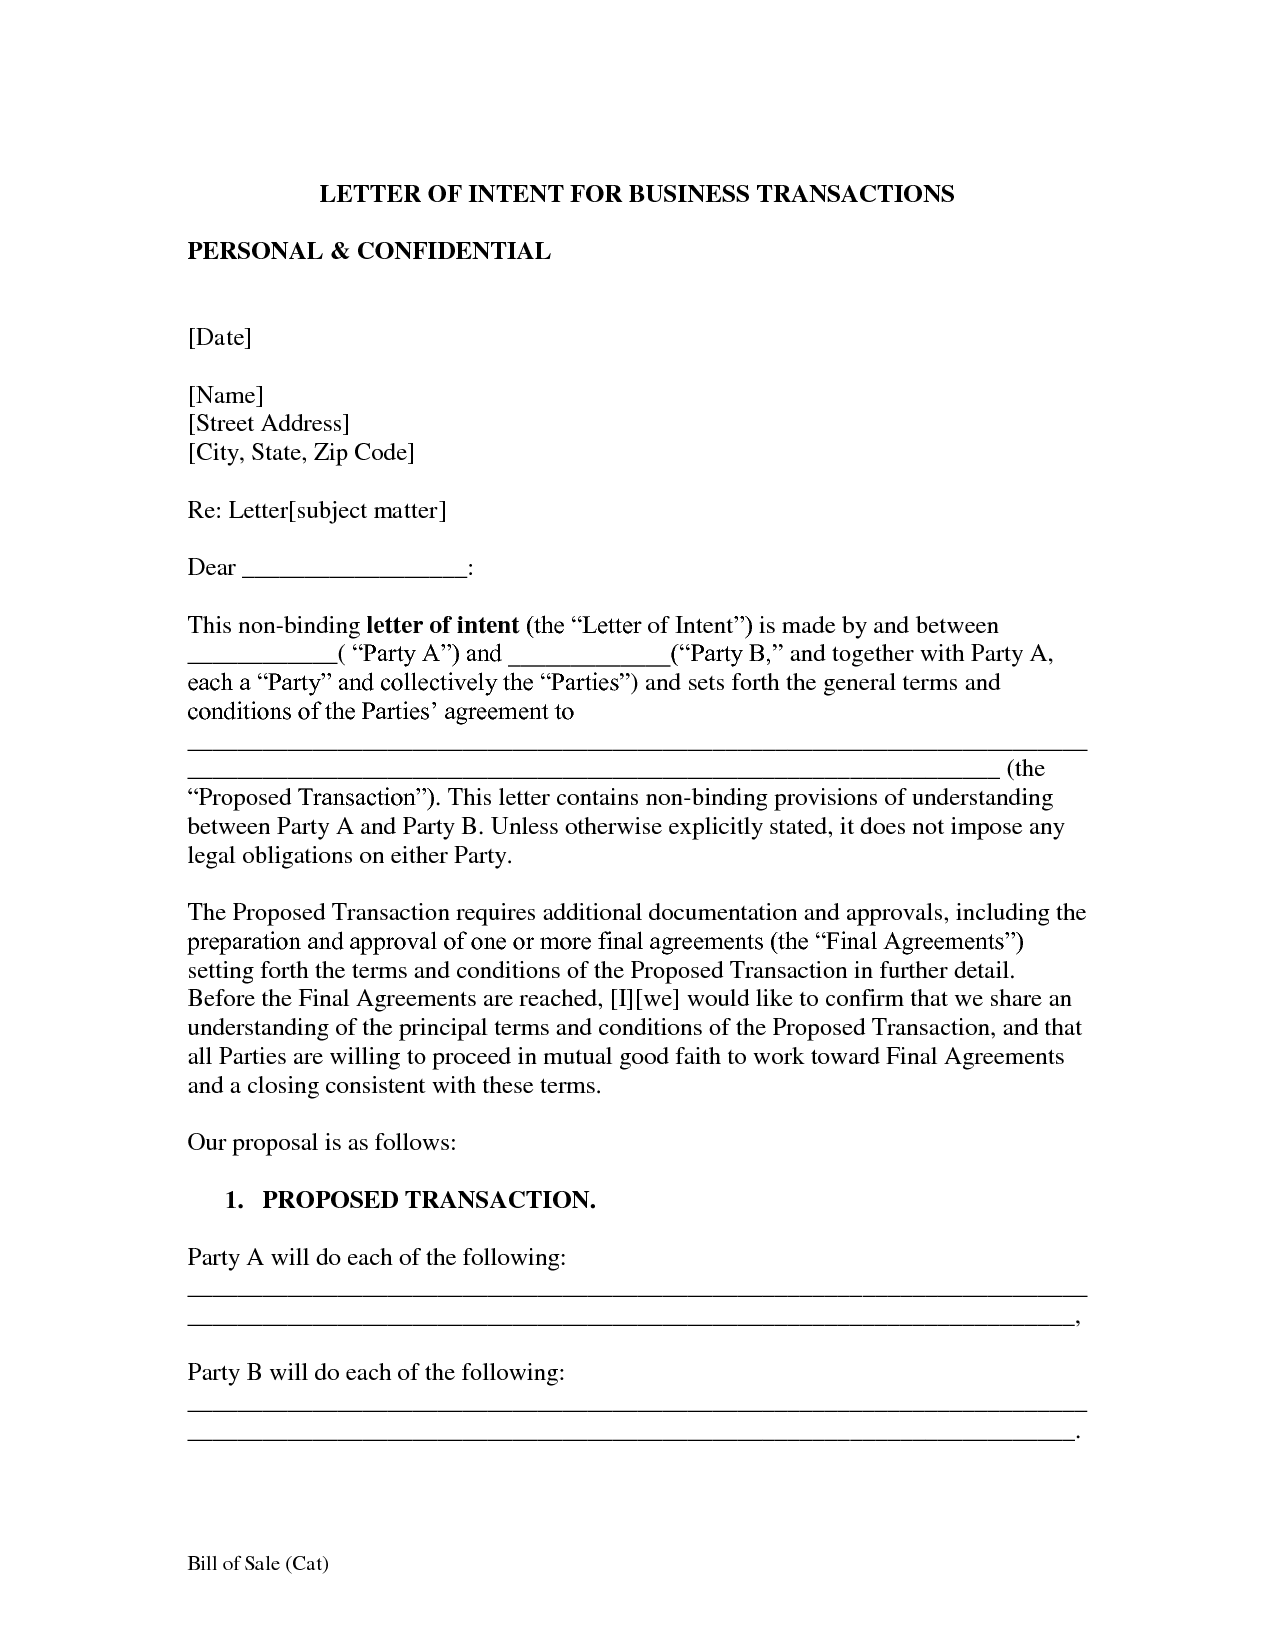 Letter Of Intent Business Template | Search Results | Easy Paleo ...    Letter  Letter Of Intent To Buy A Business Template